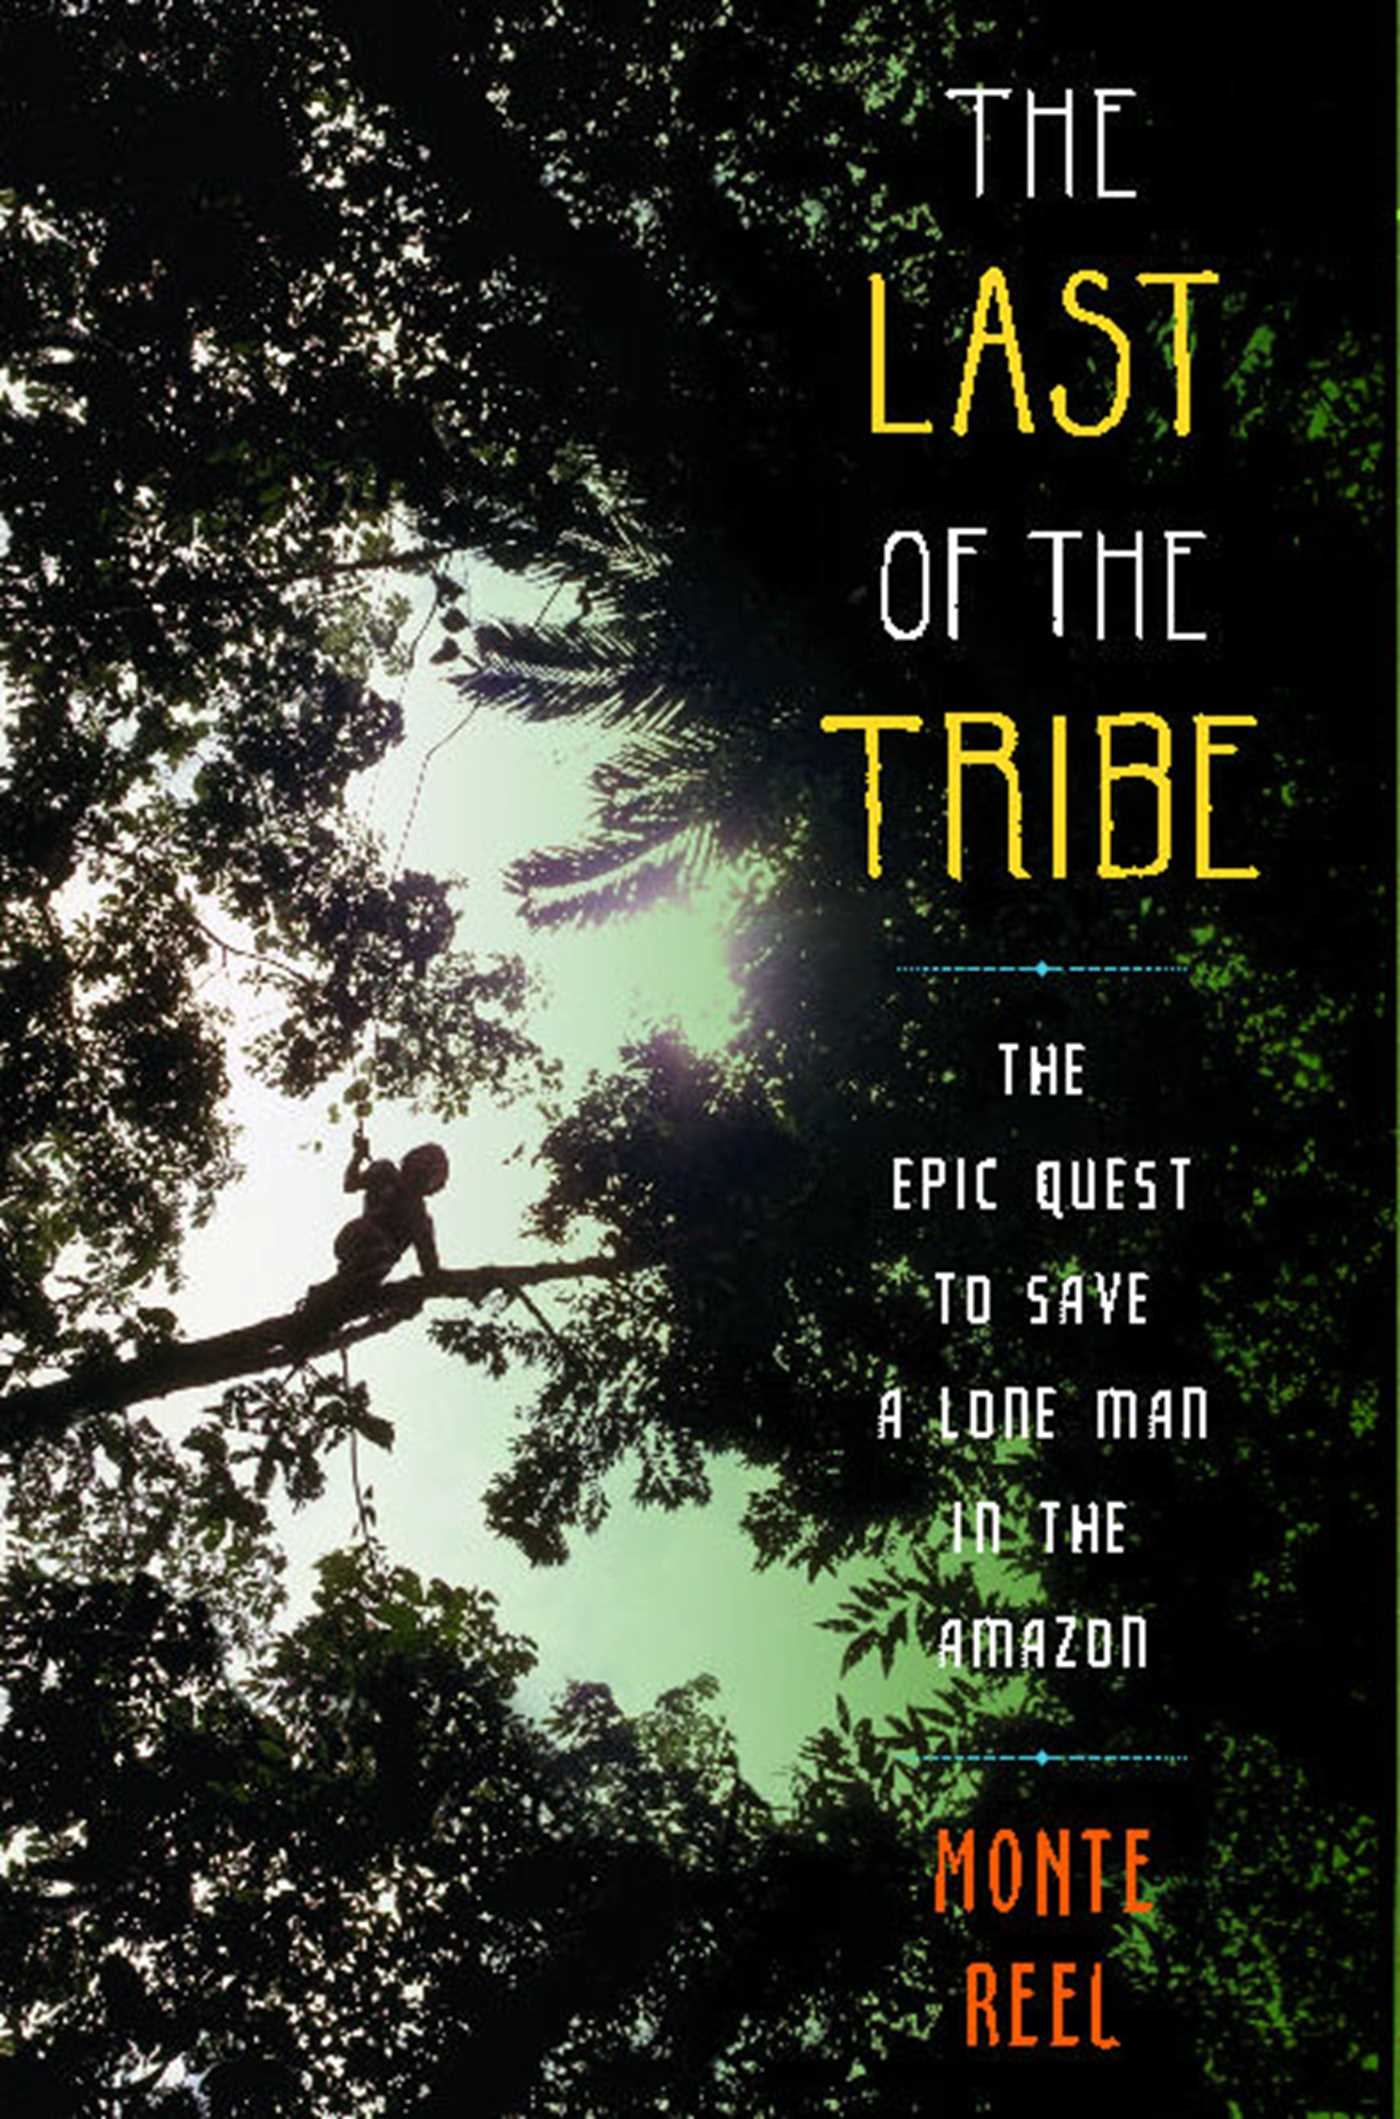 Last-of-the-tribe-9781416594758_hr